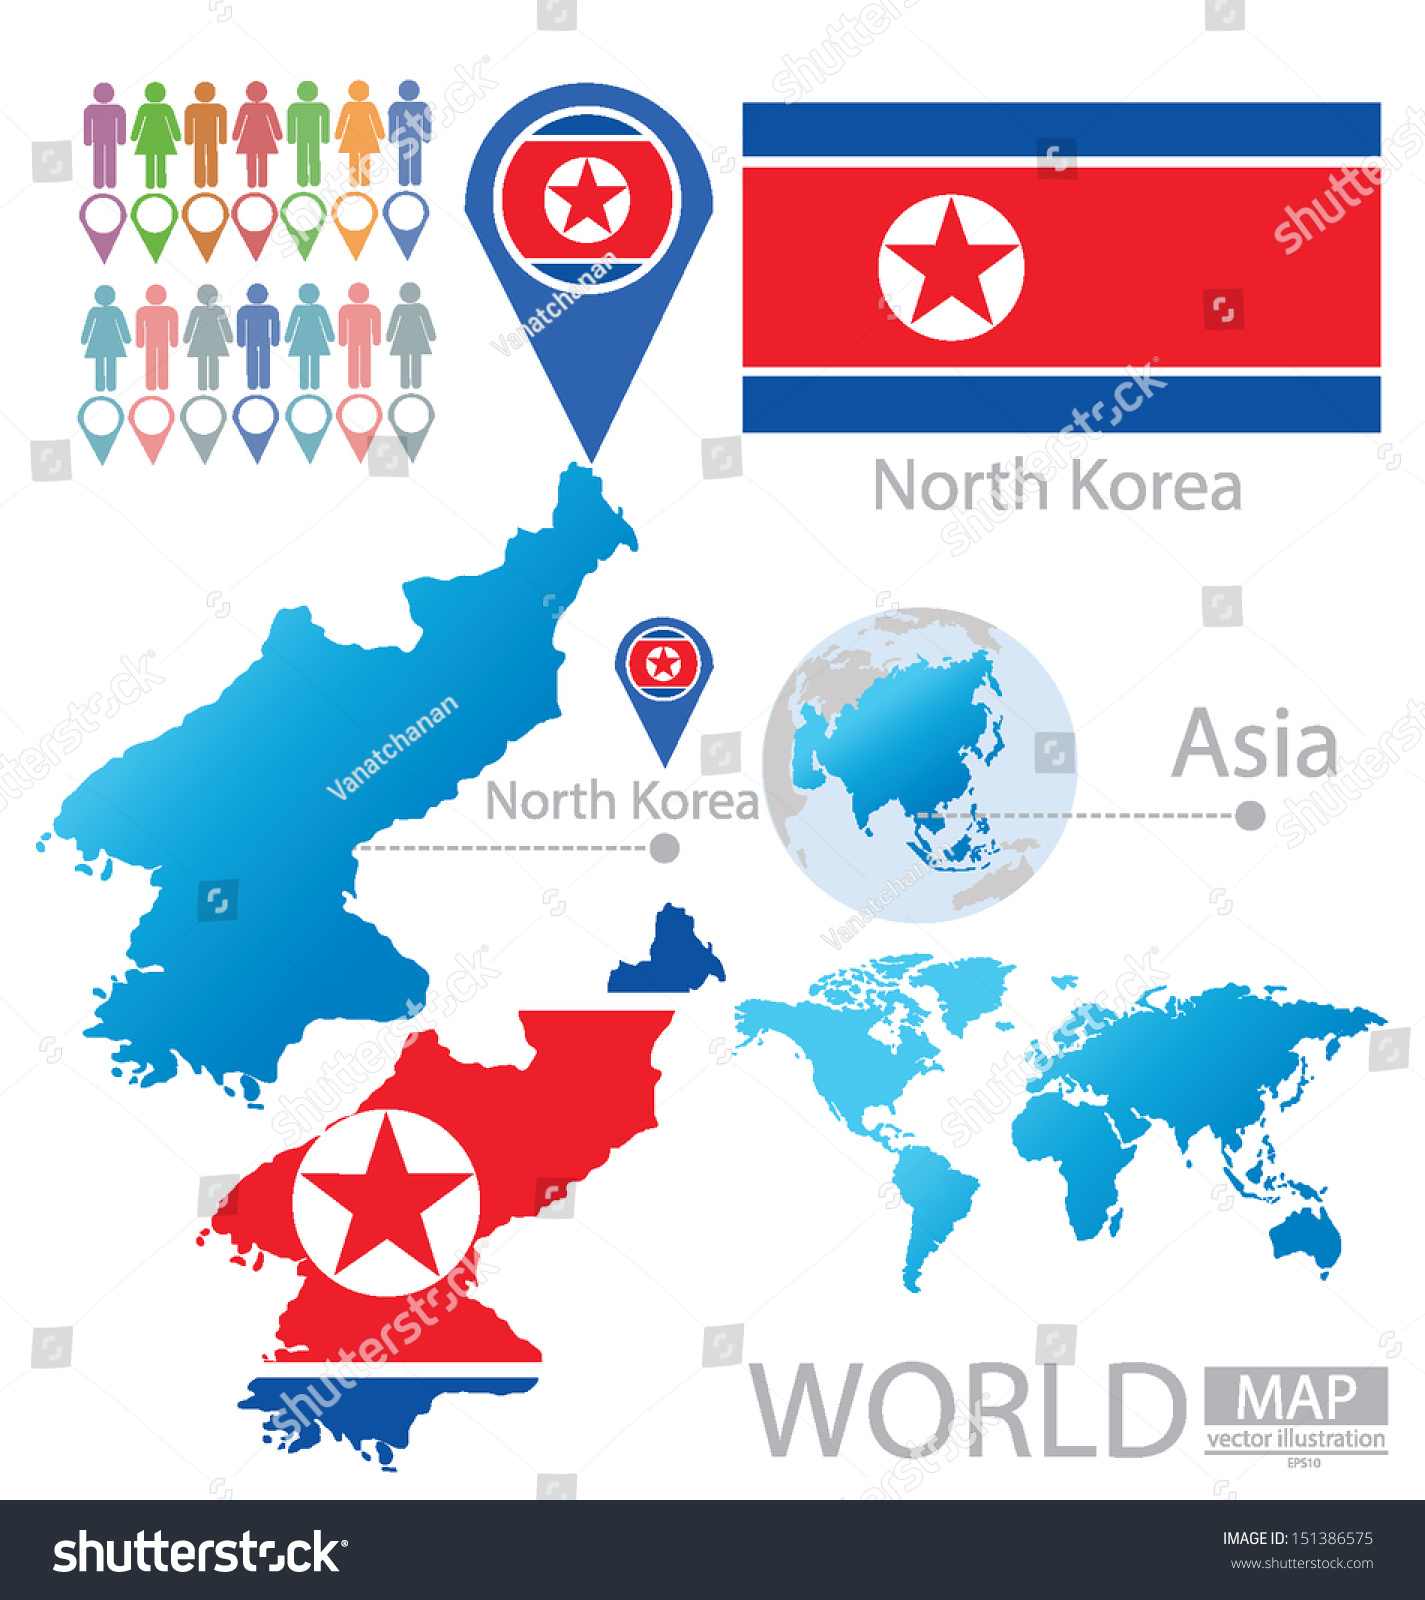 Picture of: Vector De Stock Libre De Regalias Sobre Democratic Peoples Republic Korea North Korea151386575